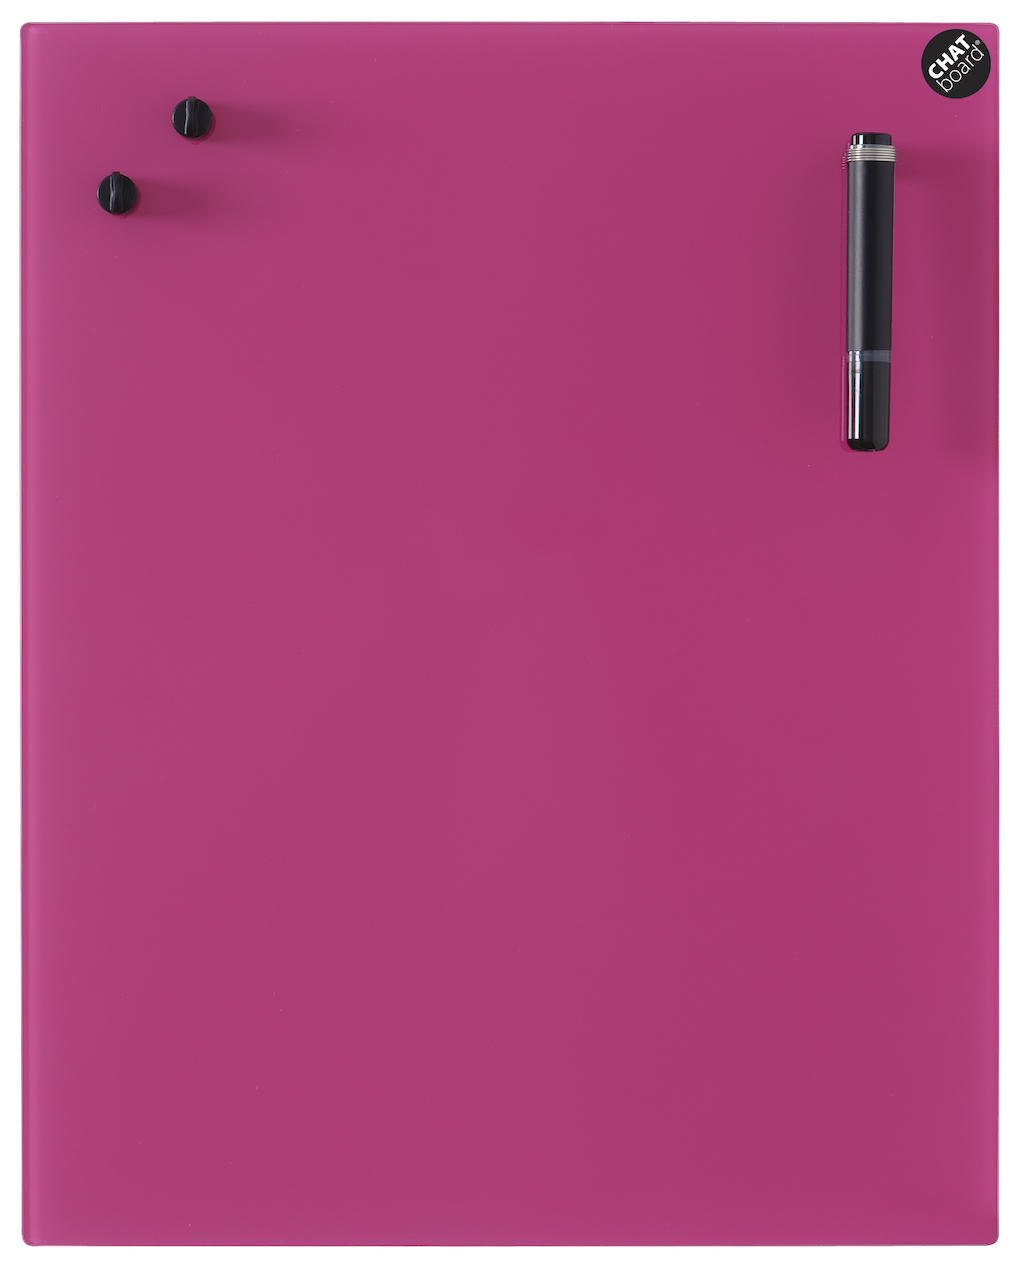 CHAT BOARD® – Fuchsia